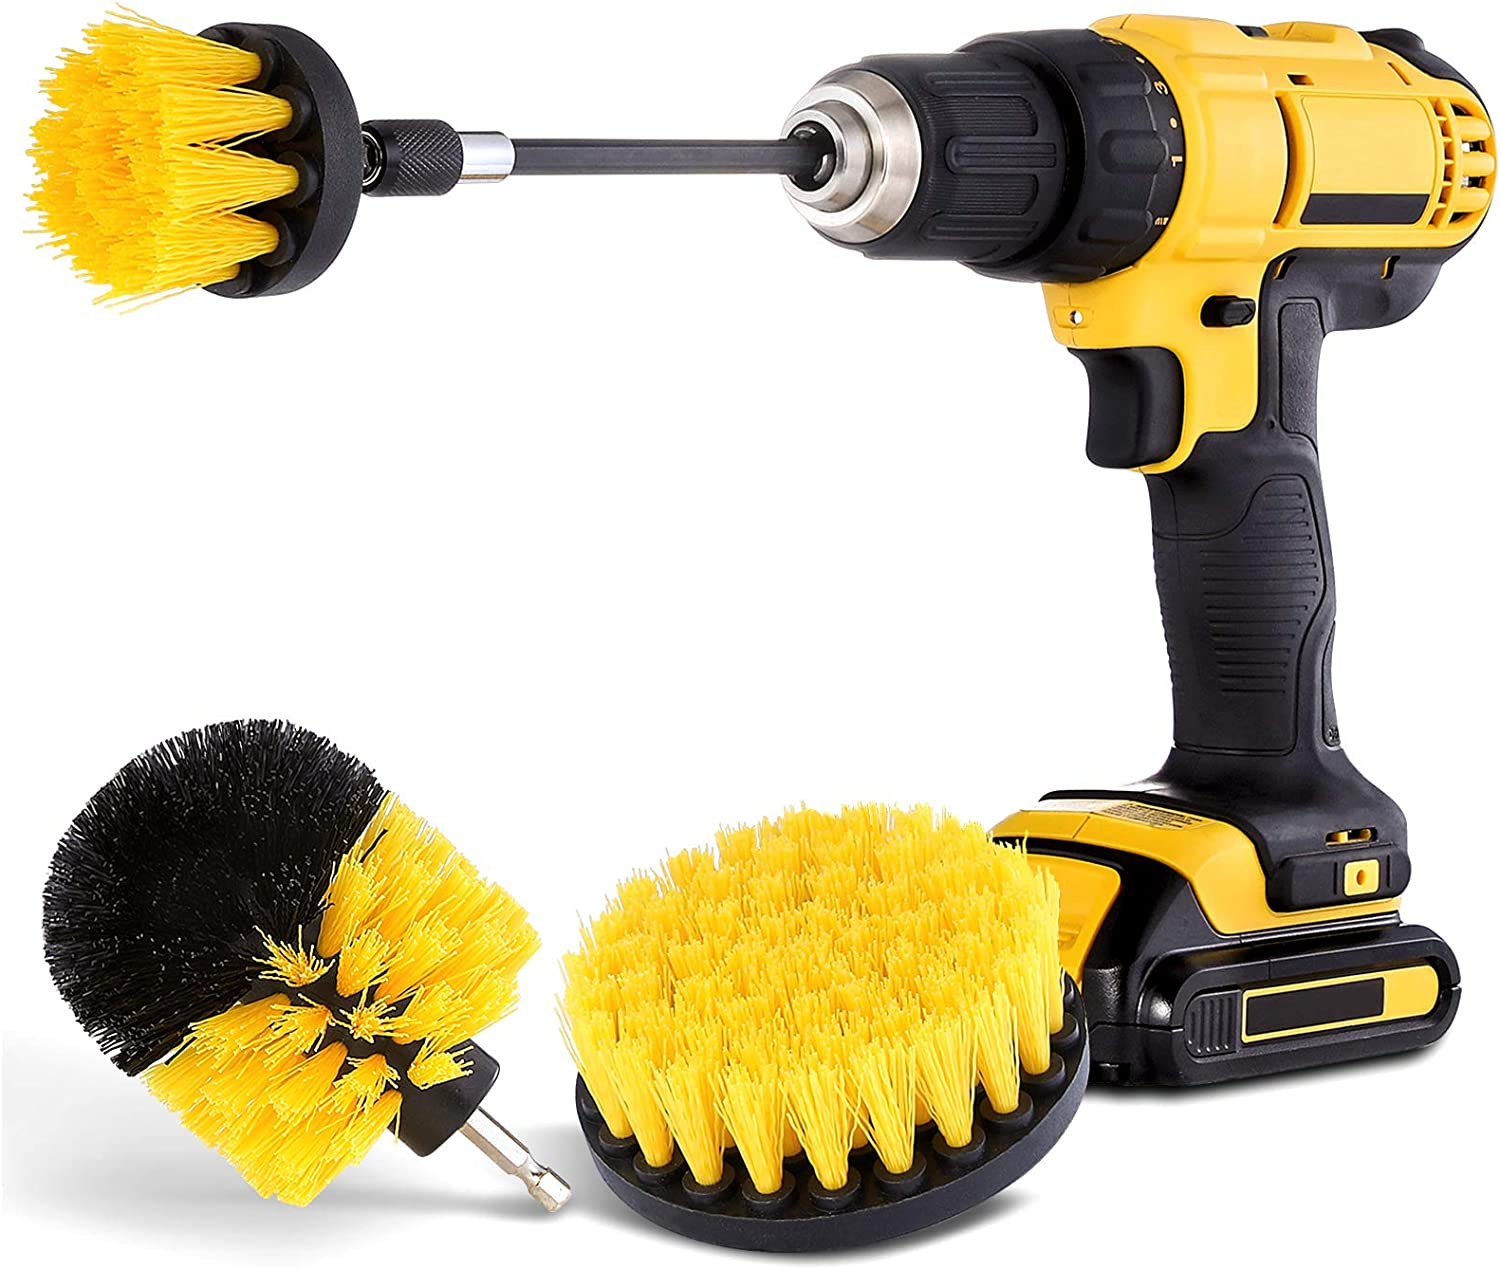 Amazon Com Drill Brush Attachment Set Power Scrubber Brush Cleaning Kit All Purpose Drill Brush With Extend Attachment For Bathroom Surfaces Grout Floor Tub Shower Tile Kitchen And Car Health